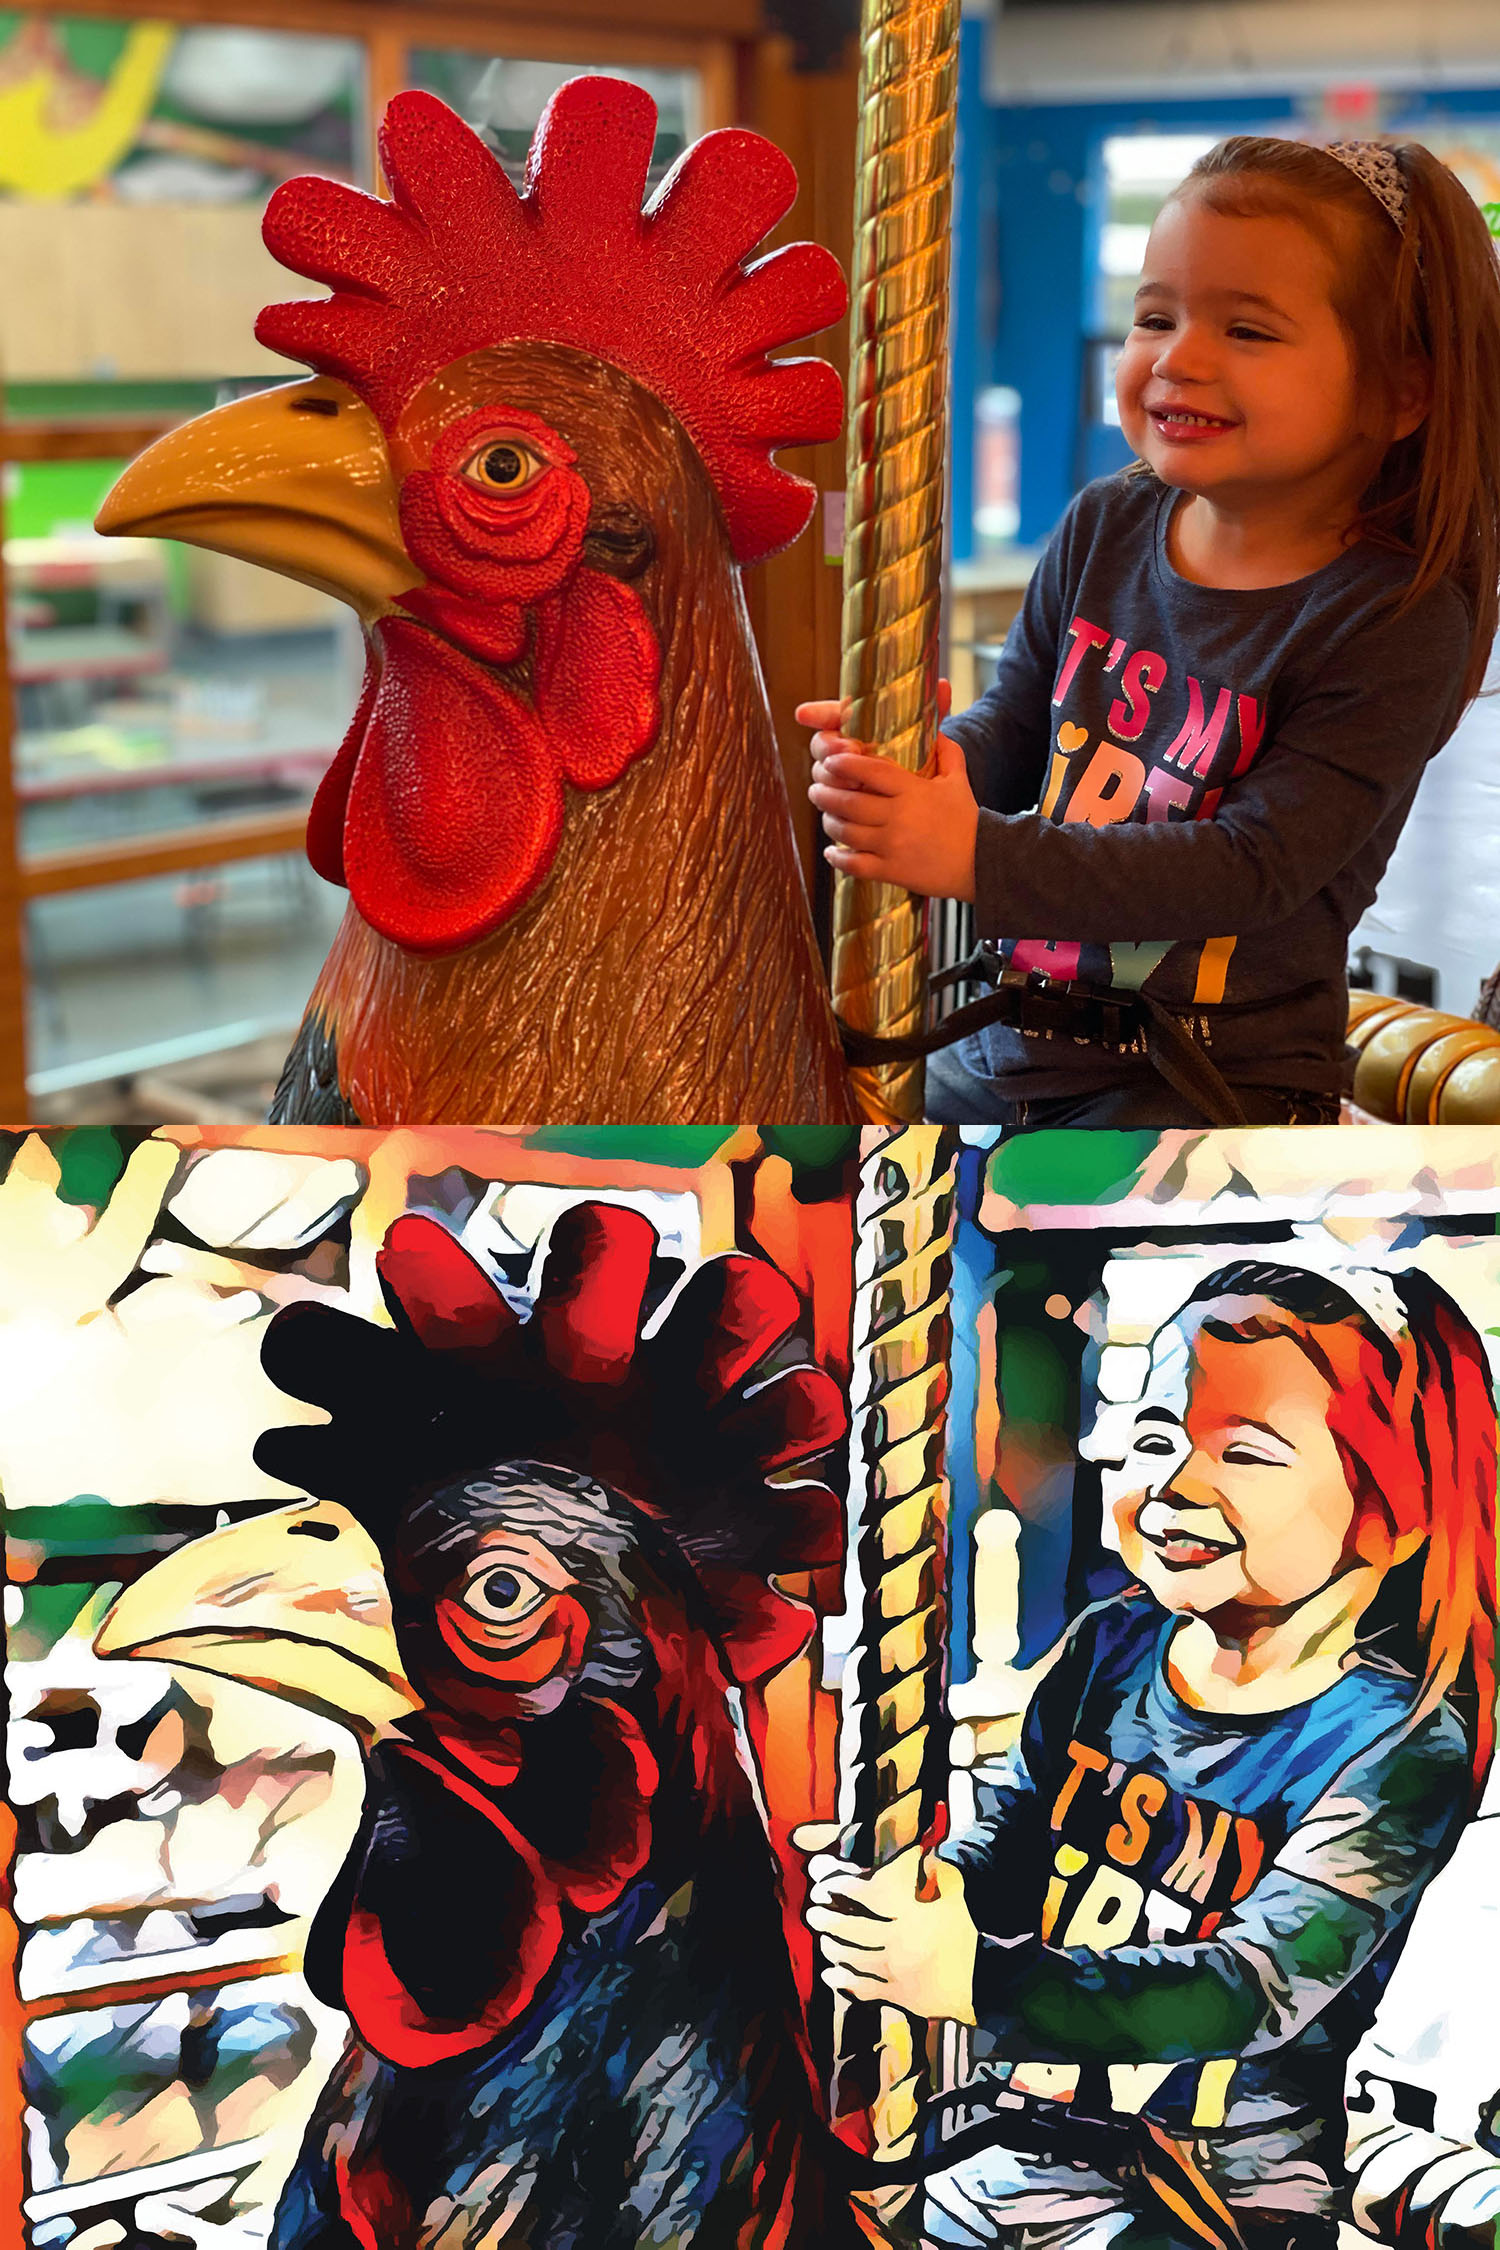 Before and after stylized image of a girl riding a carousel rooster